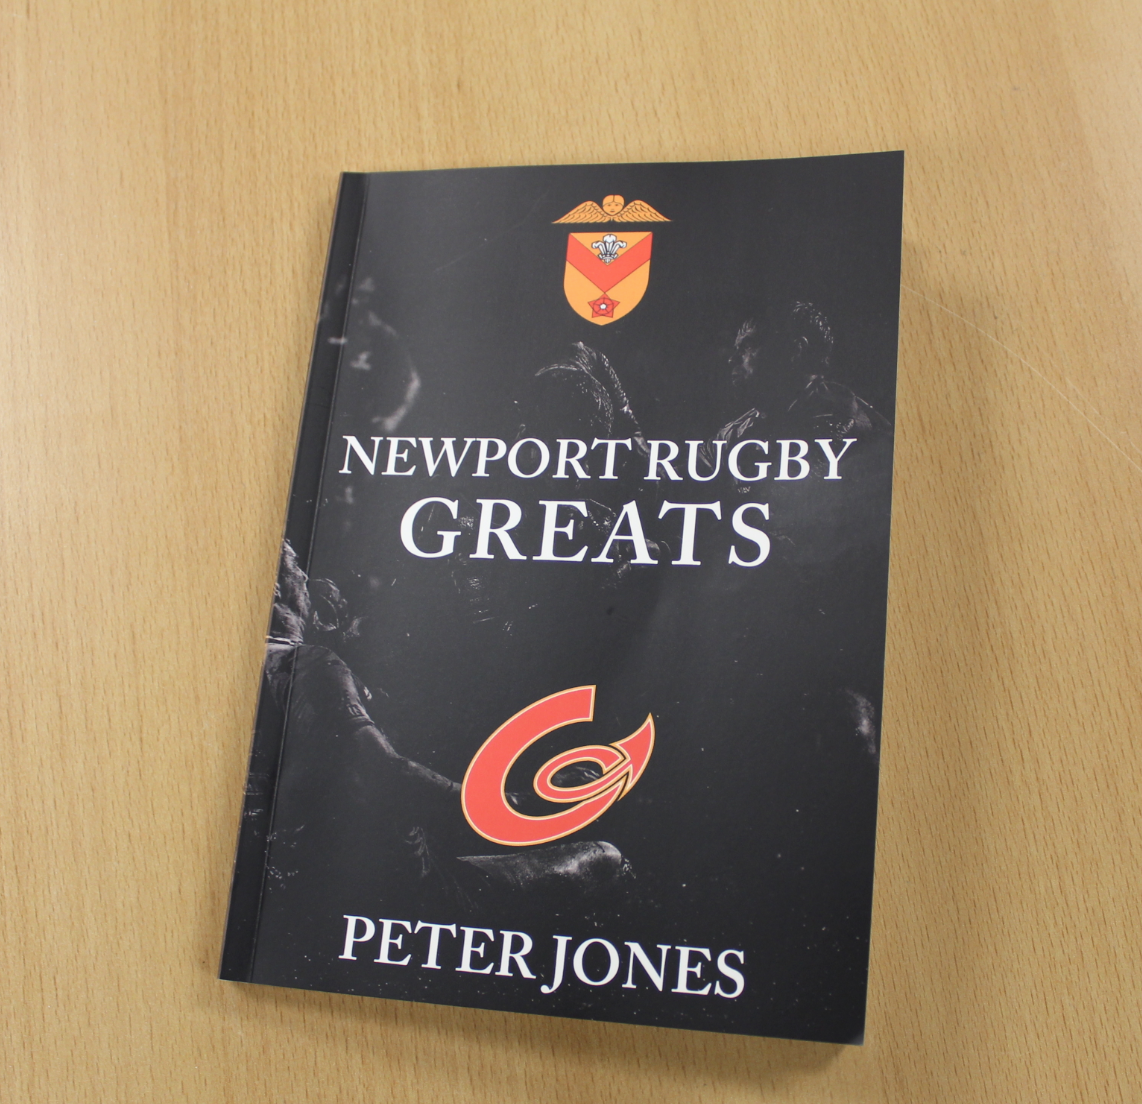 Win Newport Rugby Greats signed by @PeterJones37, Jason Forster, Tyler Morgan & Andrew Coombs. RETWEET to enter. https://t.co/re6ORnt1xj